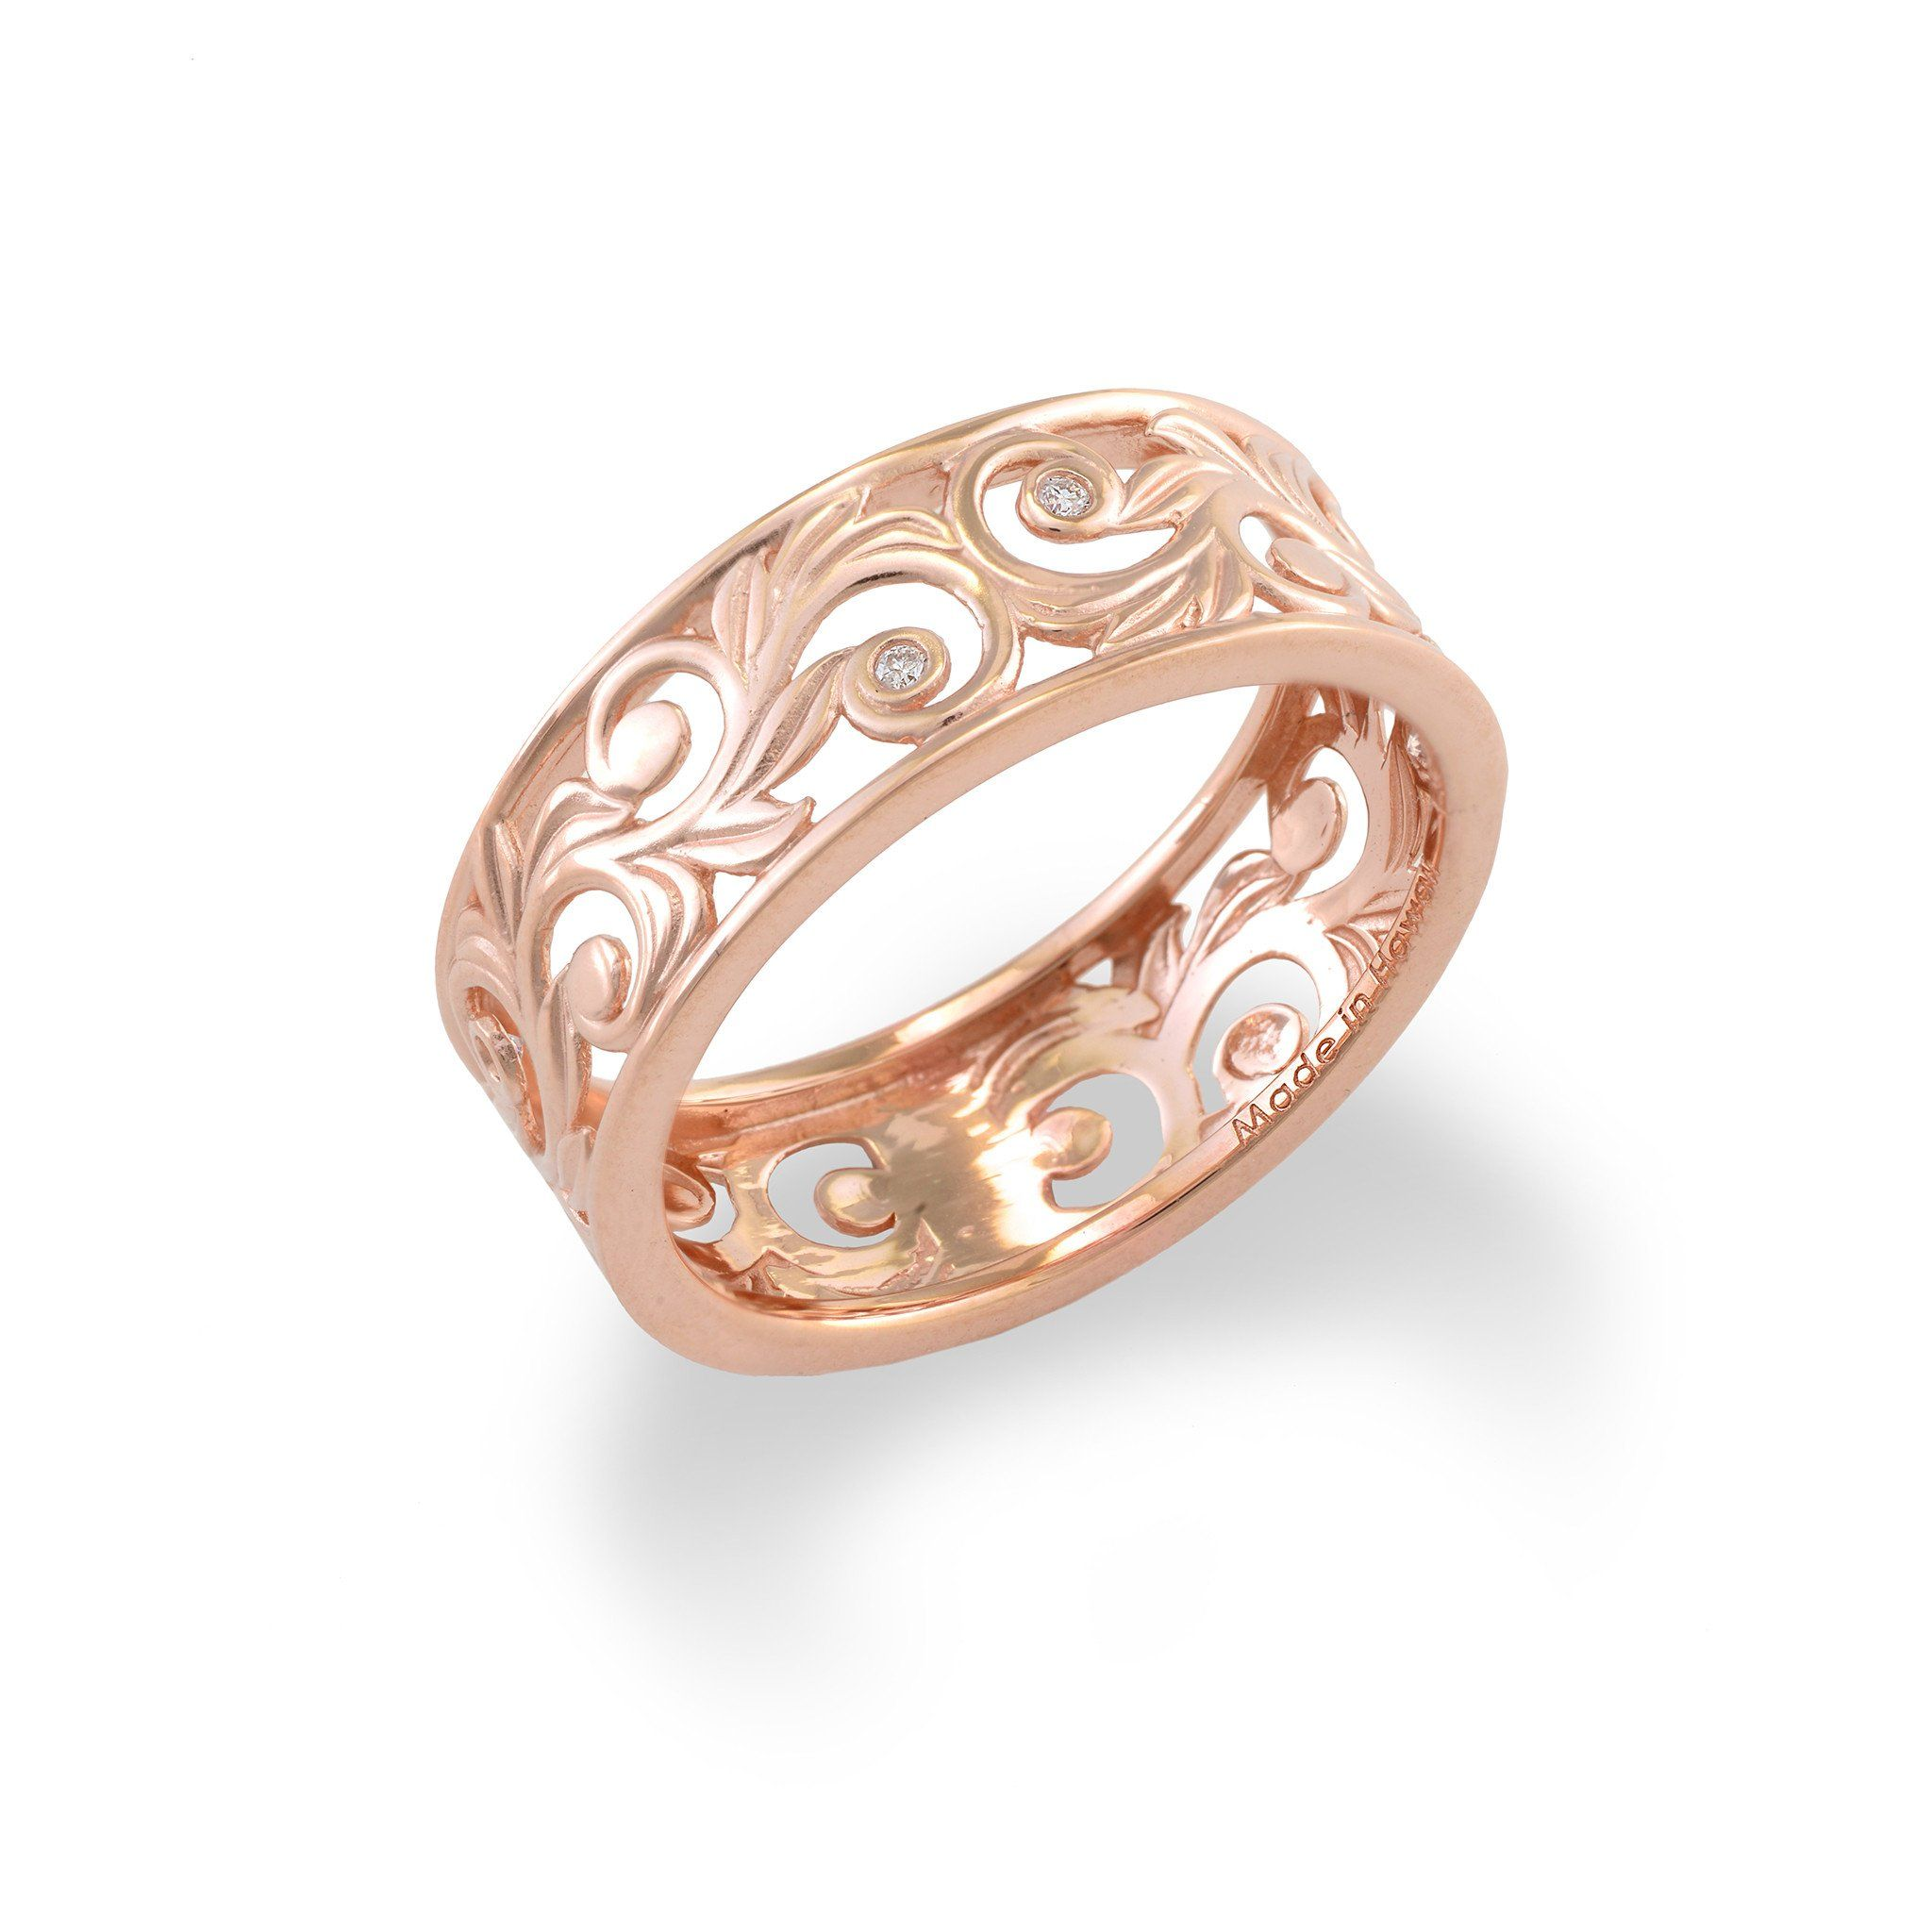 Hawaiian Heirloom Scroll 8mm Ring with Diamonds in 14K Rose Gold